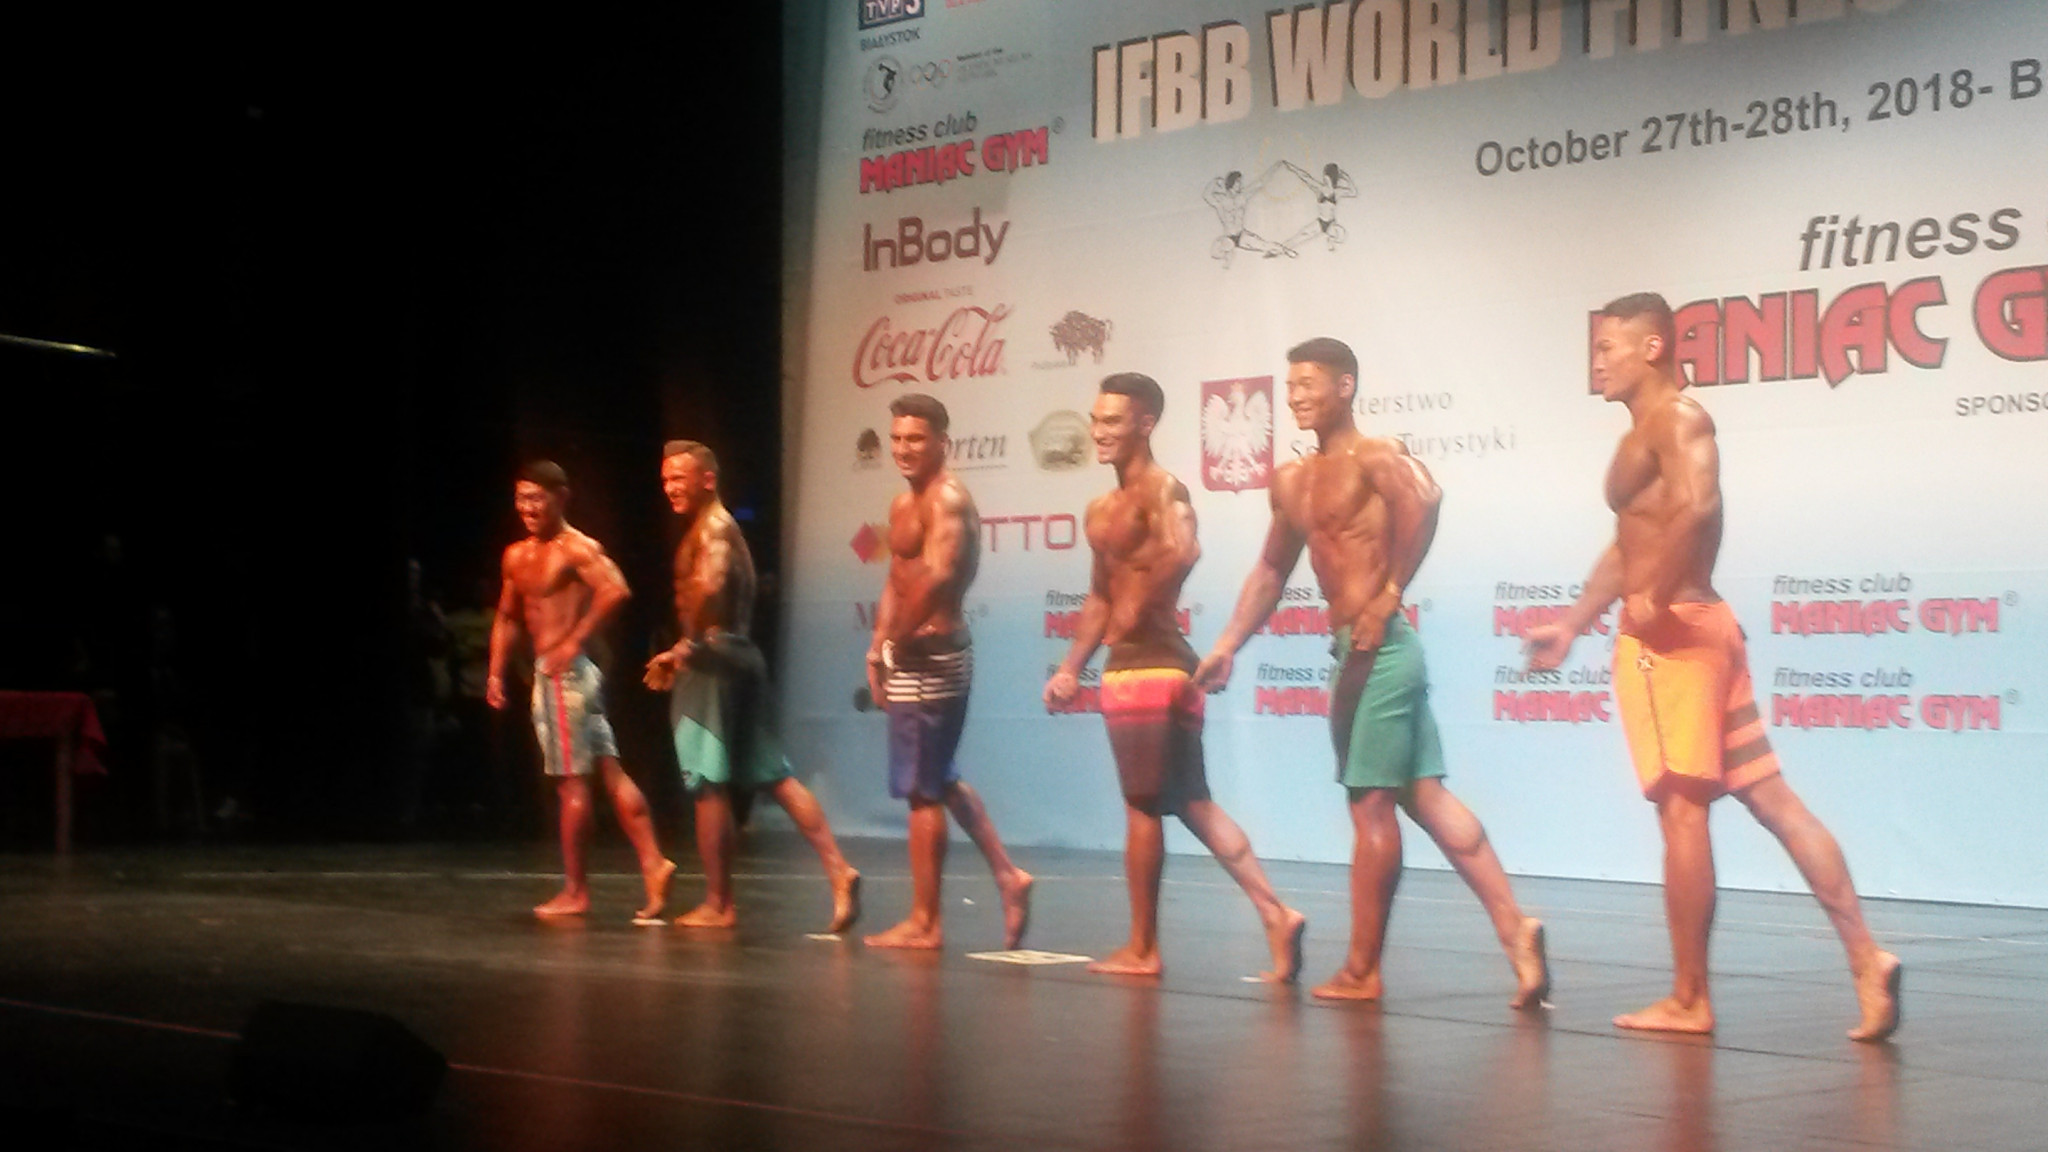 China finish first day of IFBB World Fitness Championships in Poland with golden flourish